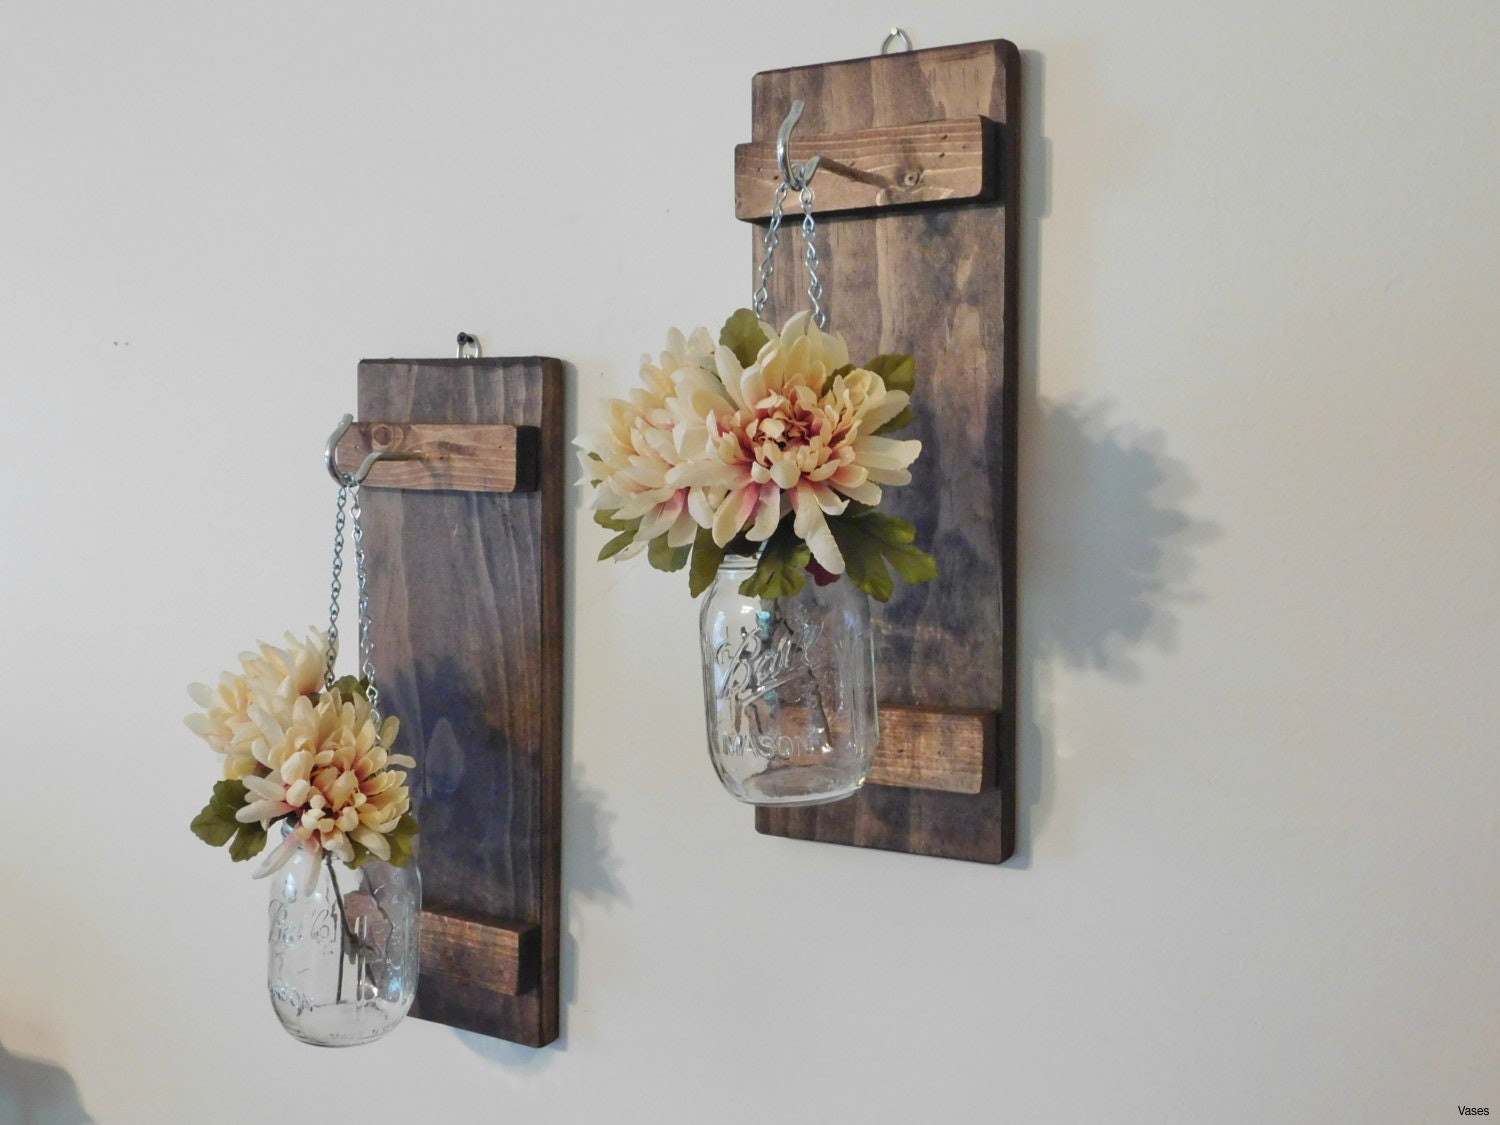 ceramic wall vase of wall mounted vases photos design floating wall vases introh mounted within design floating wall vases introh mounted flower vase i 0d design